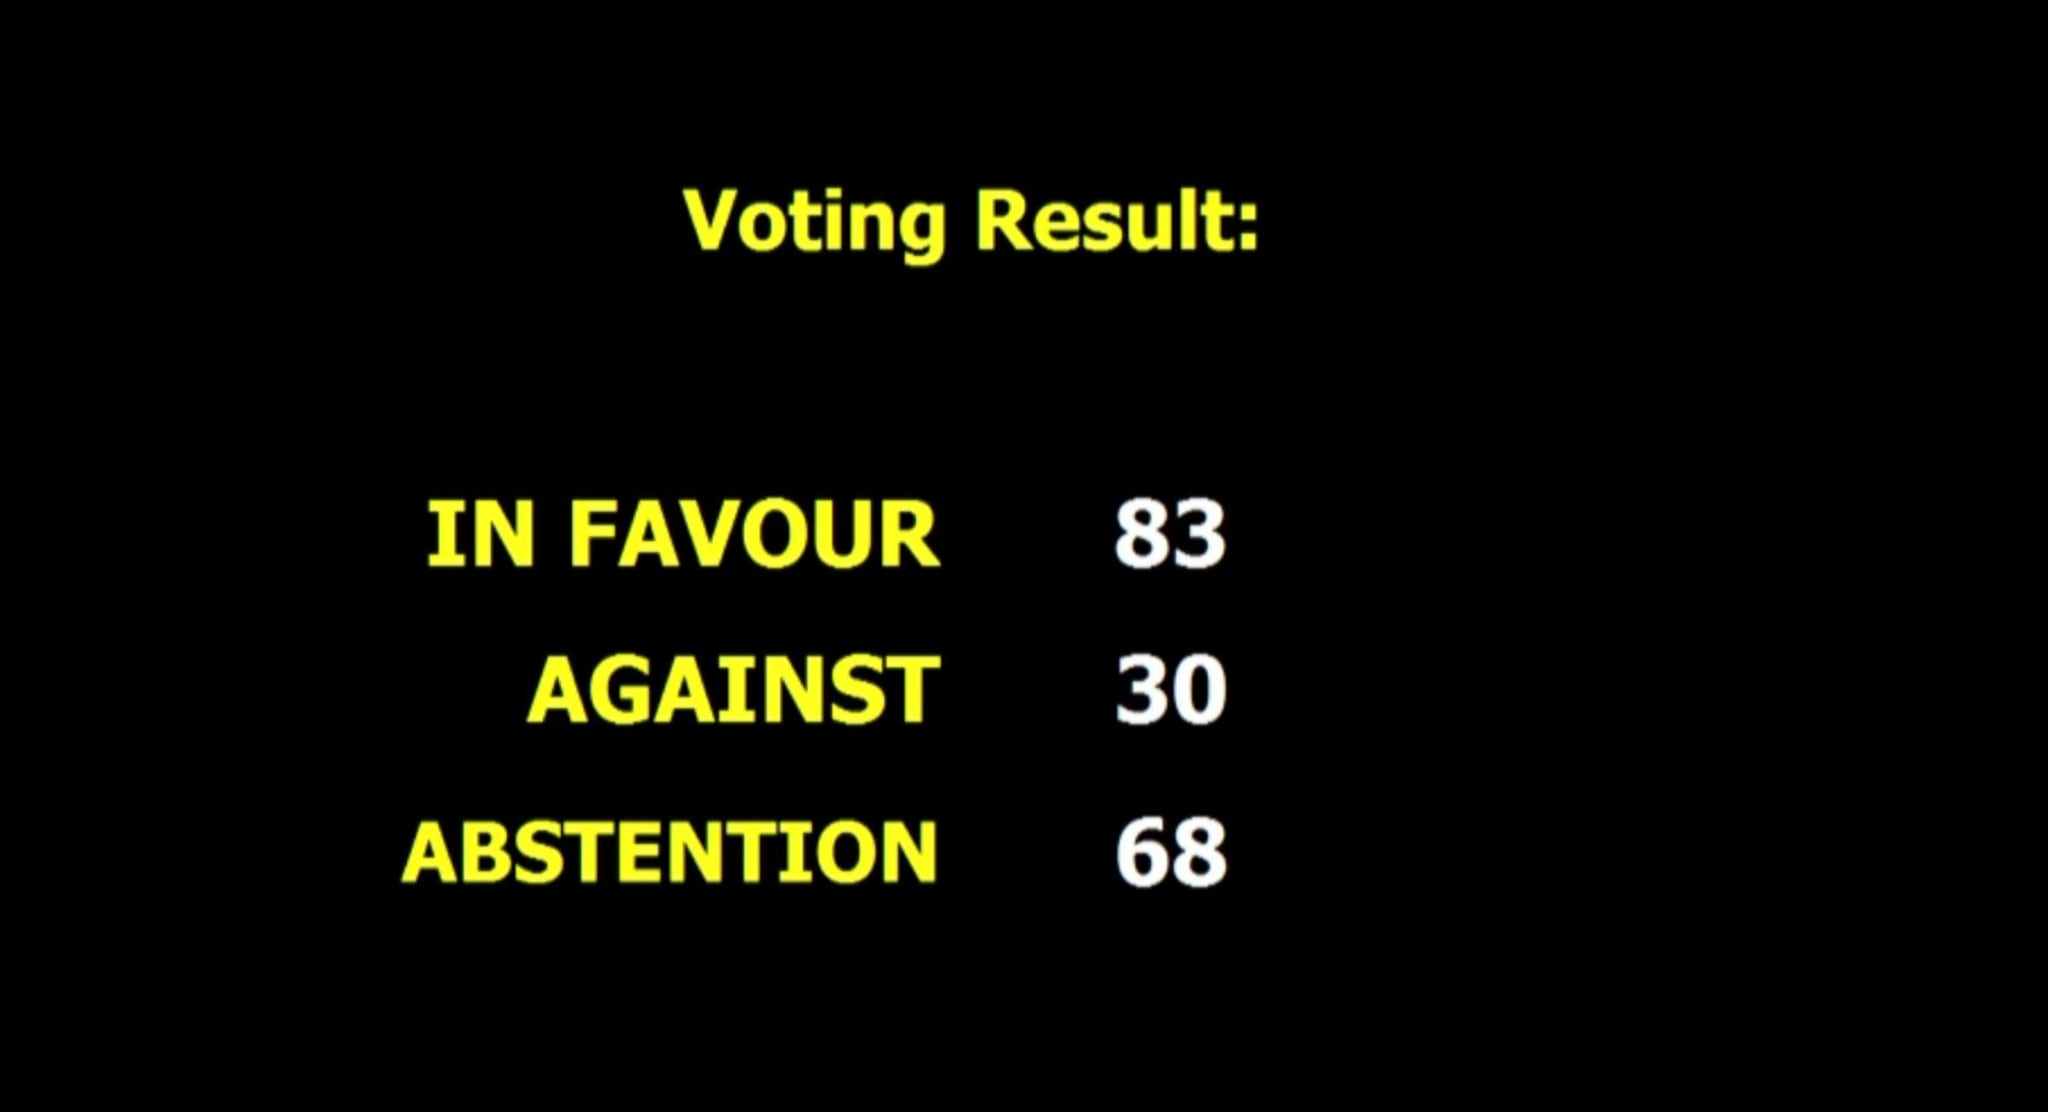 By a vote of 83 to 30 with 68 abstentions, as shown at the Third Committee of the General Assembly, the resolution expressing concern over human rights violations in Iran was approved. Photo credit: UN